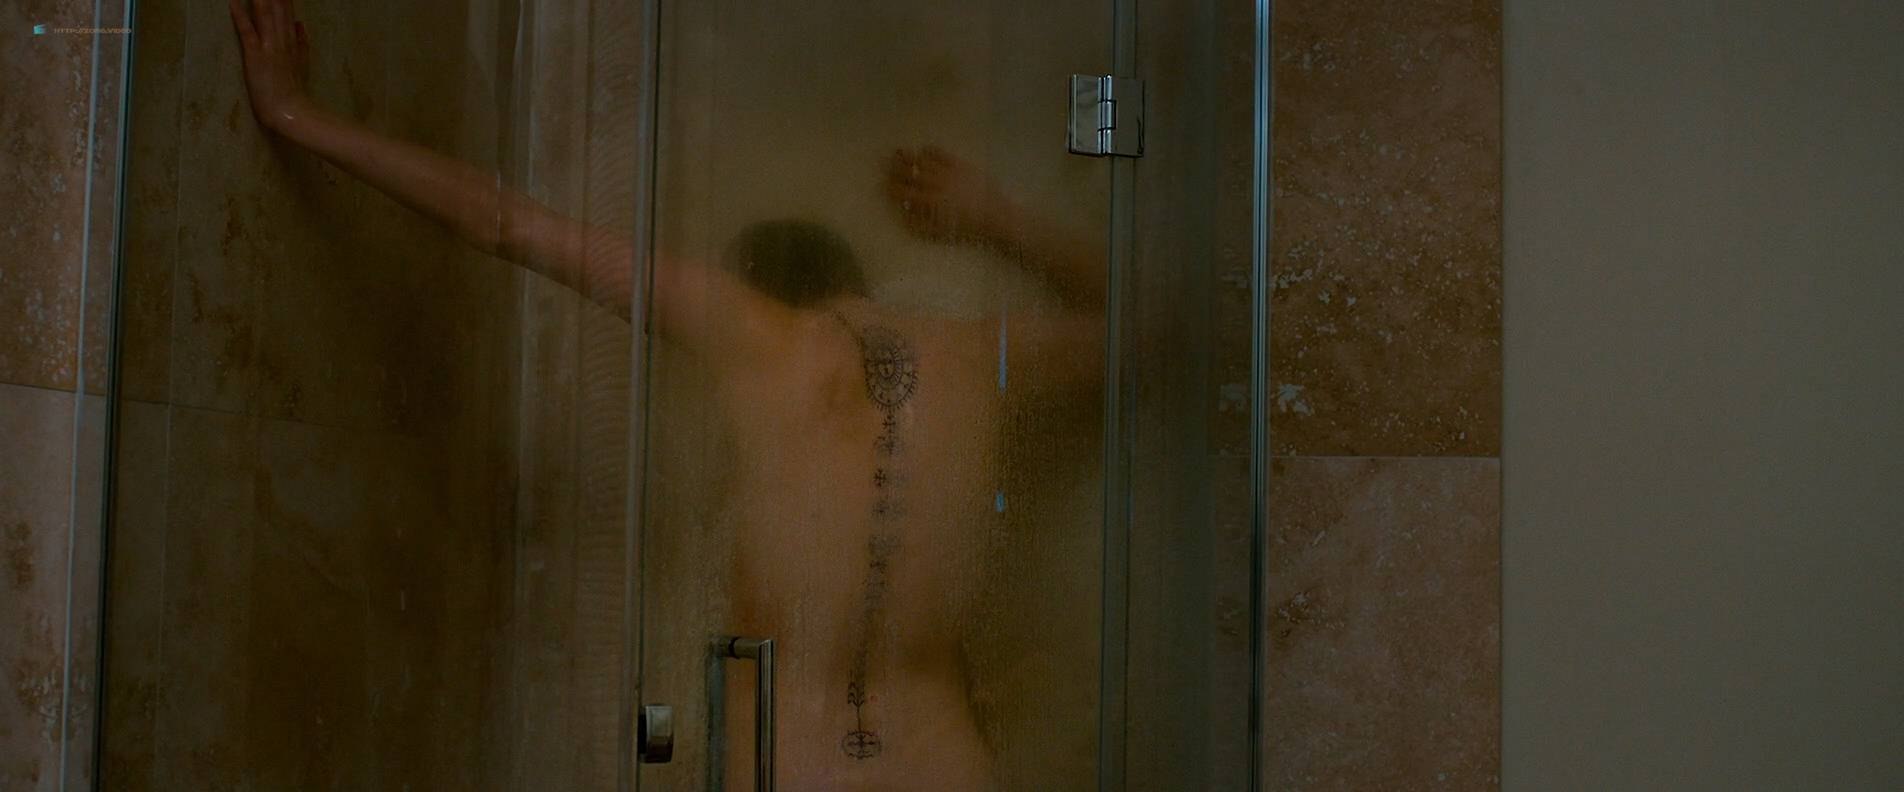 Natalie Dormer nude topless in the shower and sex Emily Ratajkowski hot - In Darkness (2018) HD 1080p (9)